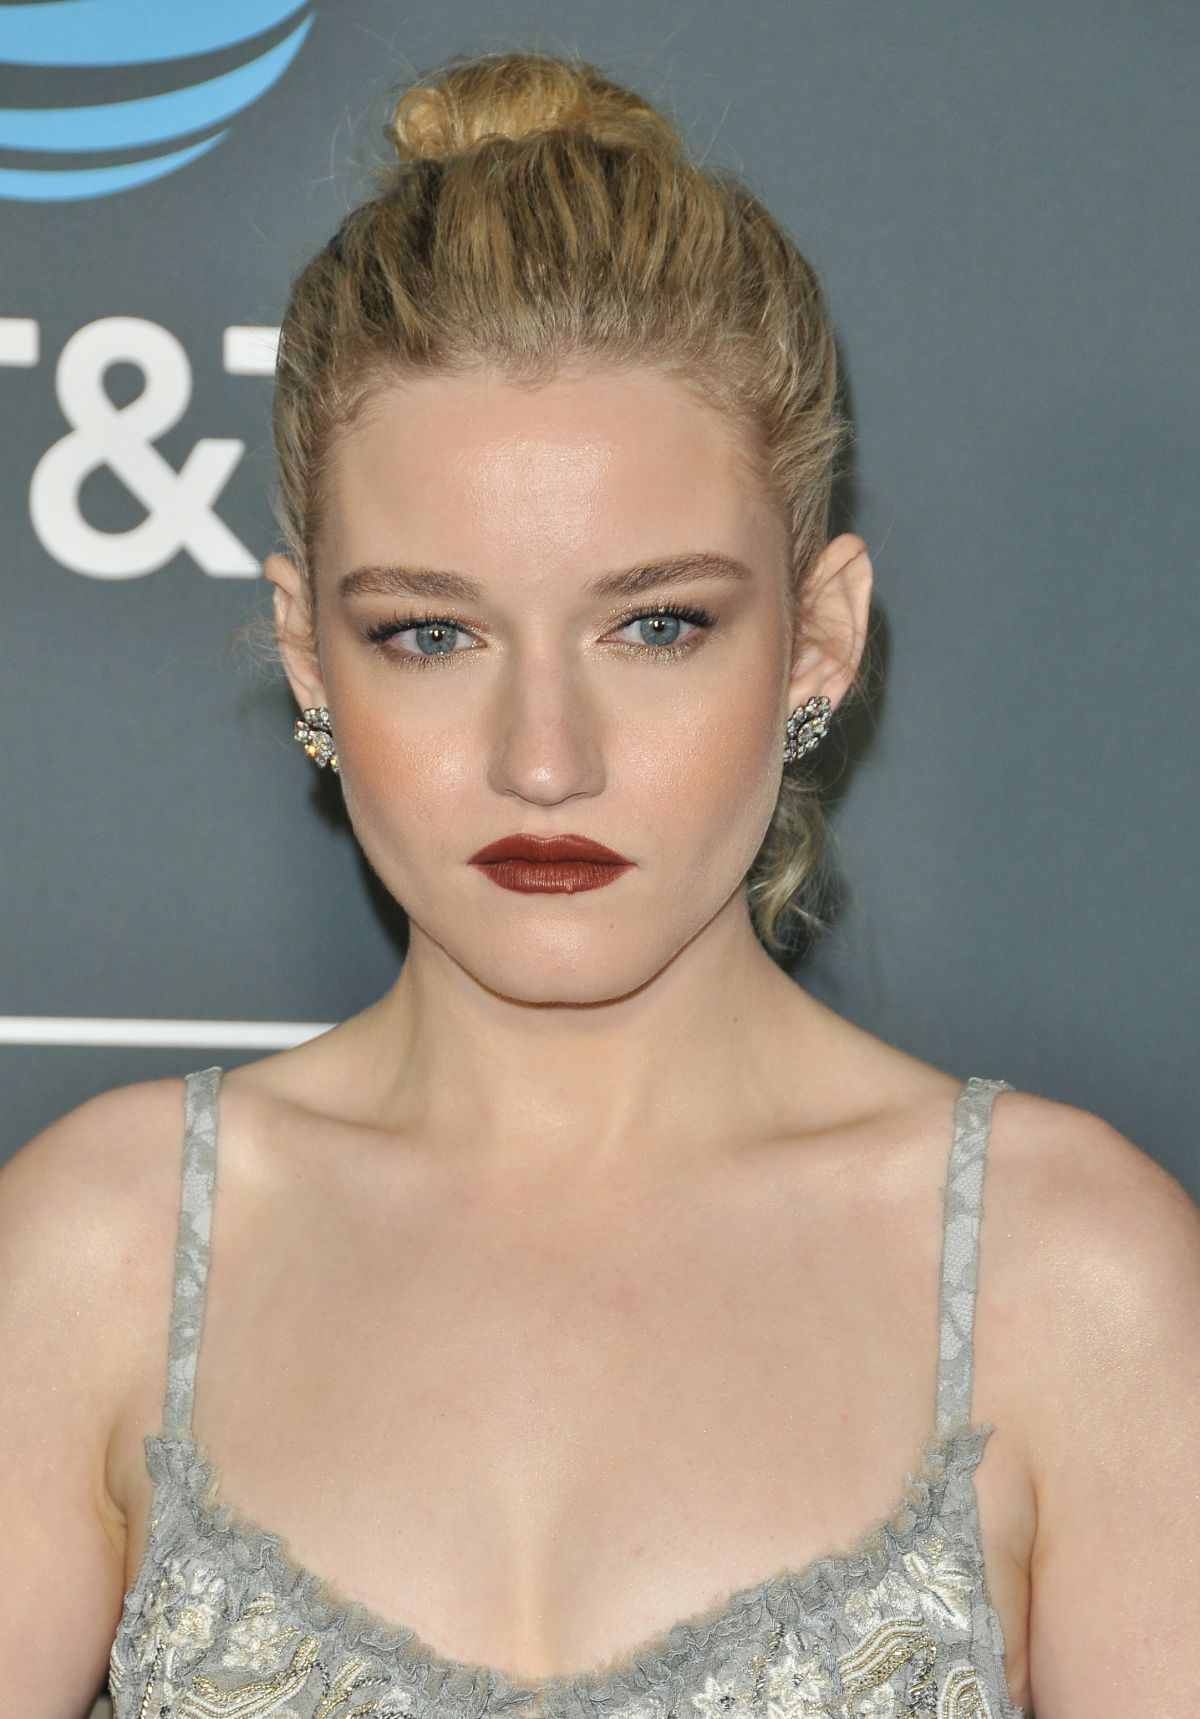 Julia Garner See Through 13 Photos: JULIA GARNER At 2019 Critics' Choice Awards In Santa